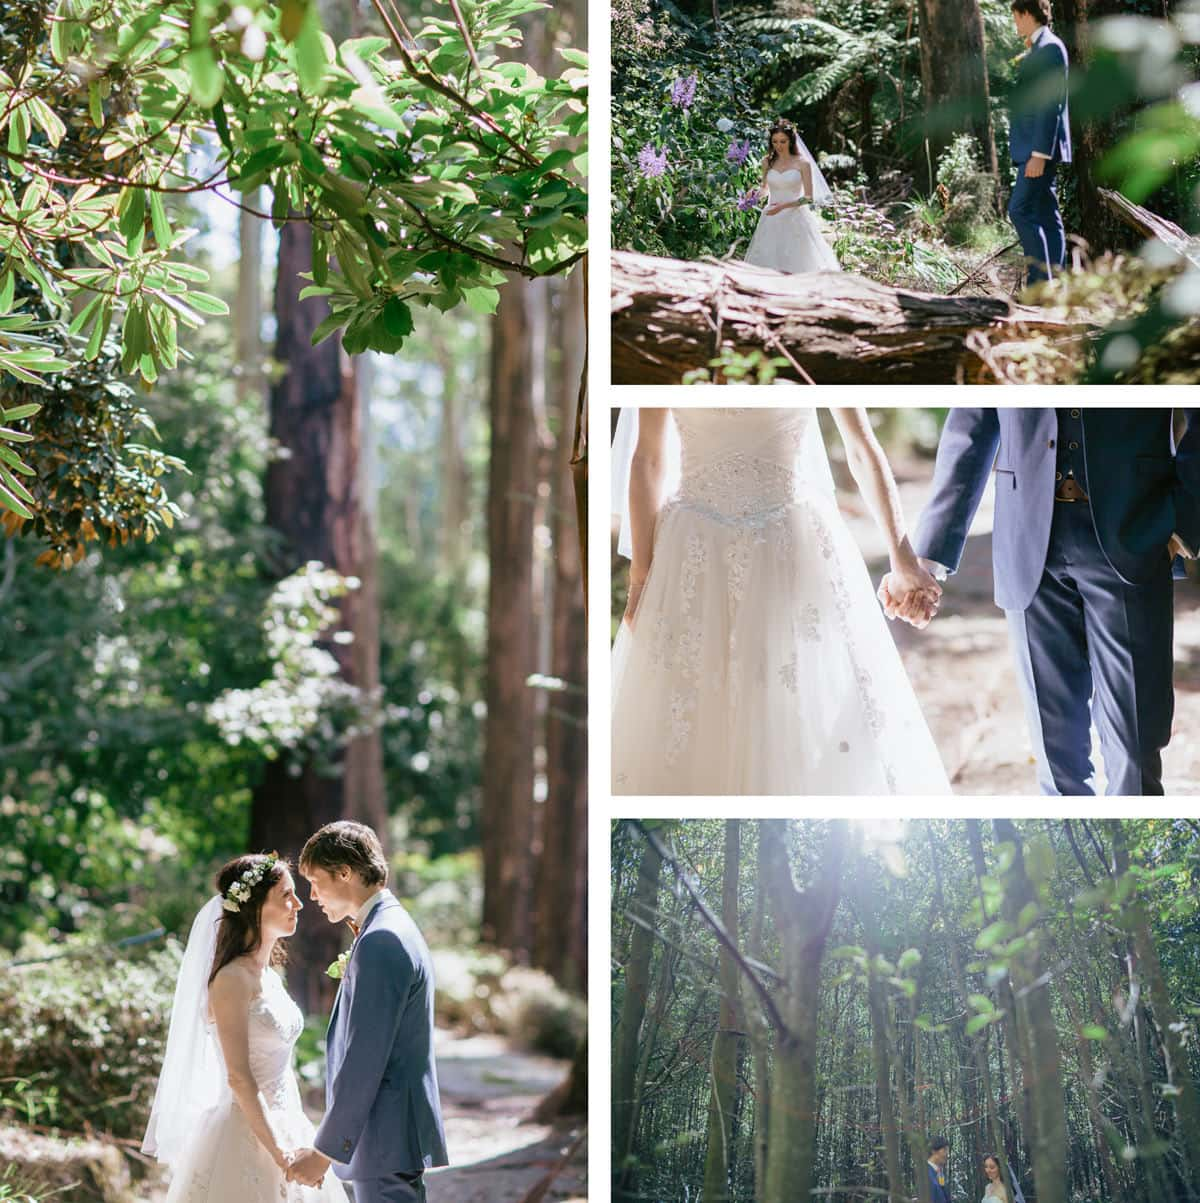 stunning outdoor wedding photographs by melbourne photographer andreas weiss - creative and candid photography